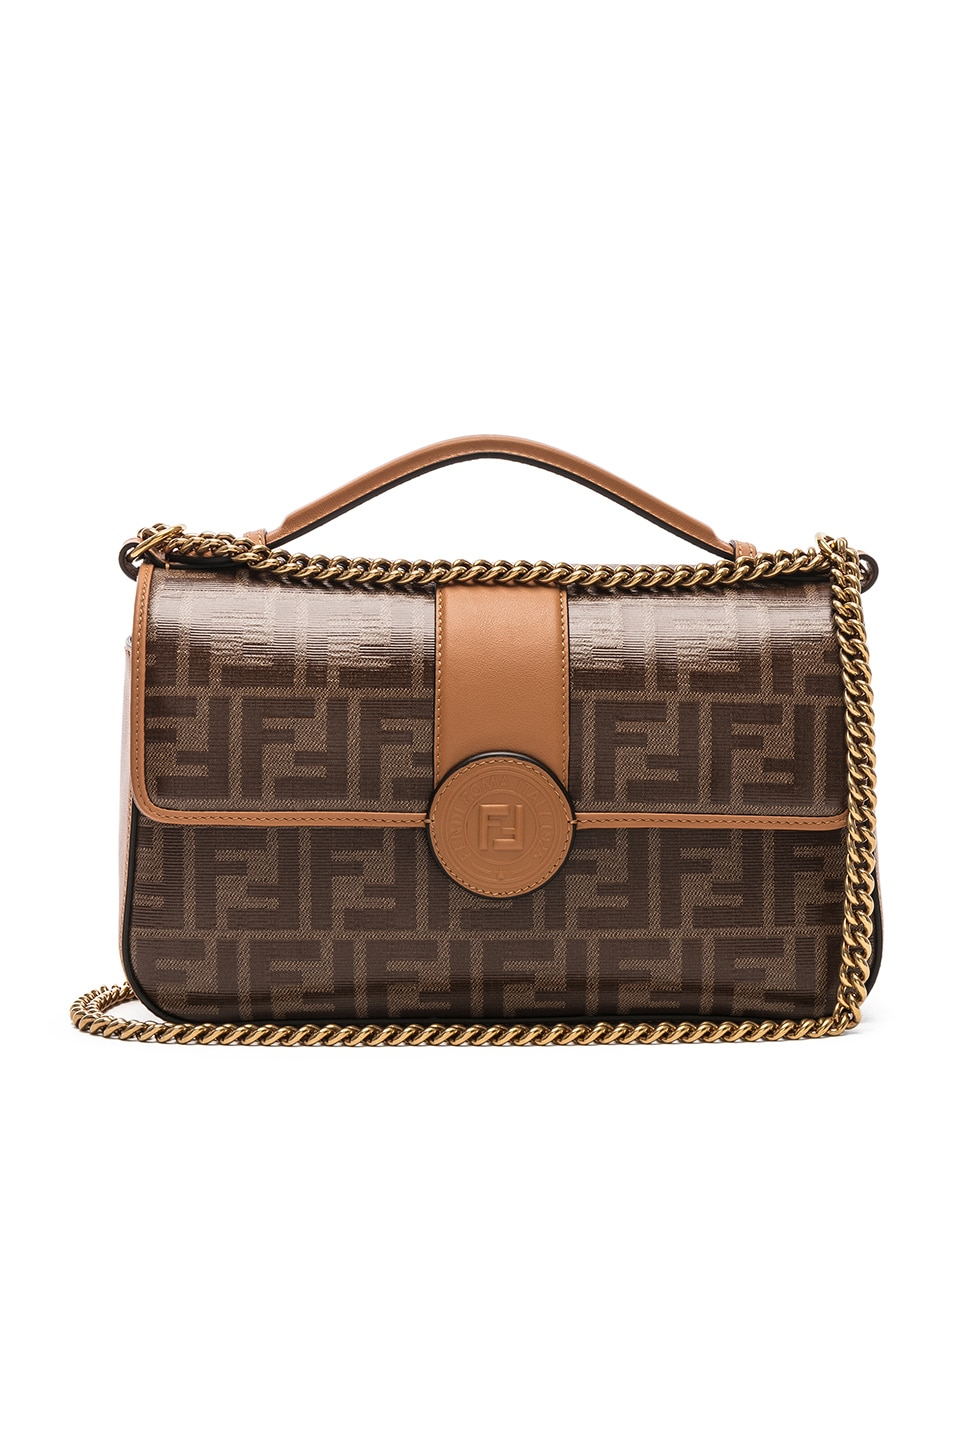 42a050df7aa1 Image 1 of Fendi Double F Shoulder Bag in Tan